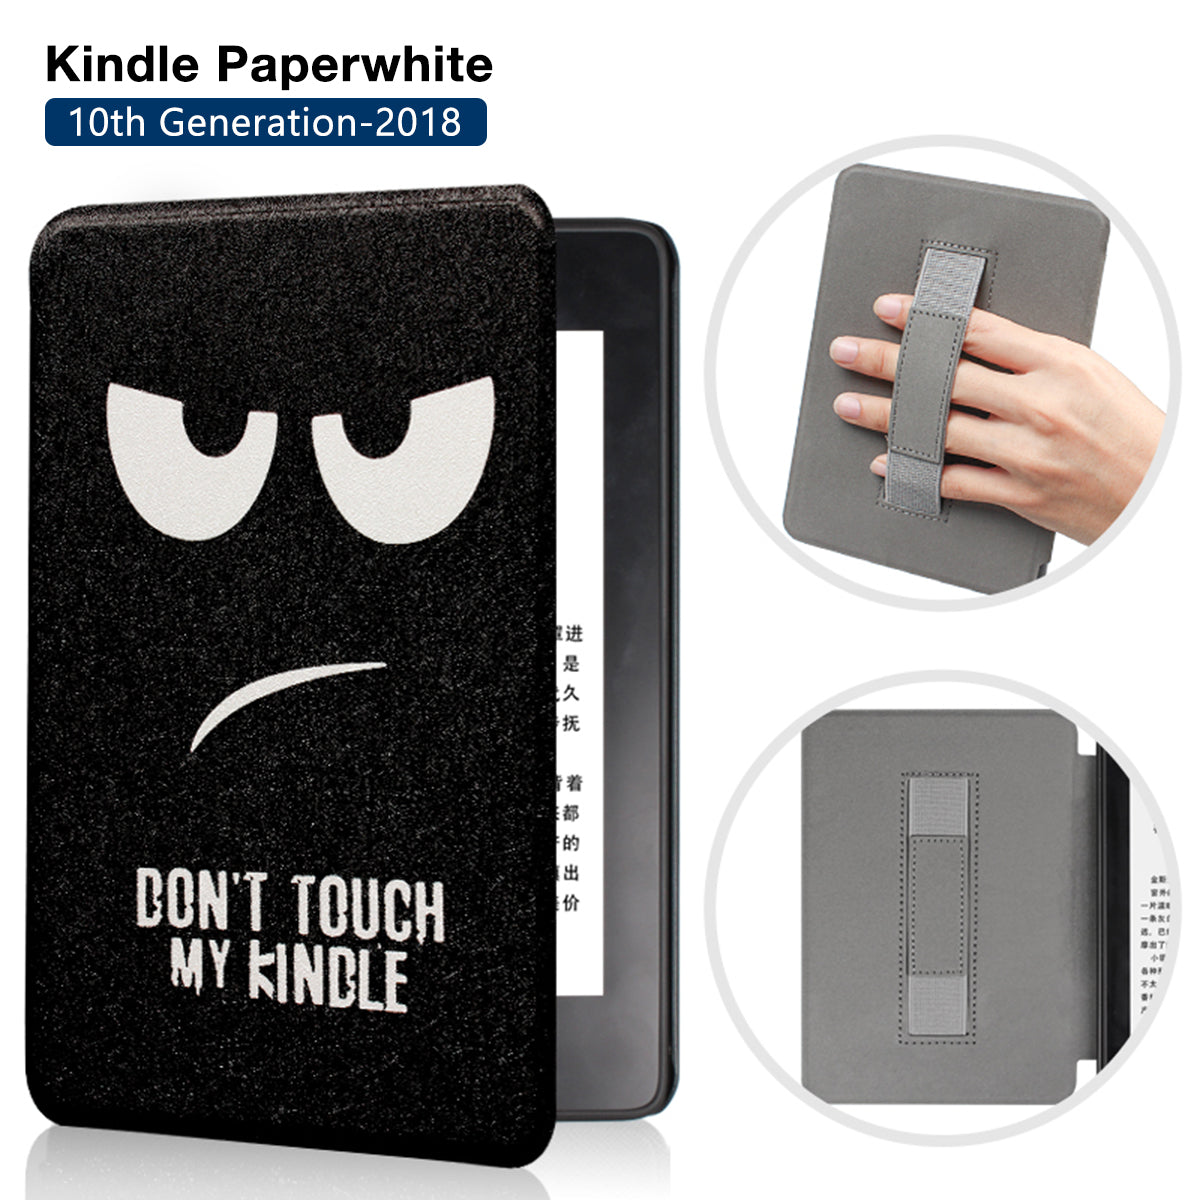 Premium Quality Colorful Painting Leather Cover for Amazon Kindle Paperwhite 10th Generation-2018 with Hand Strap- Big Eyes